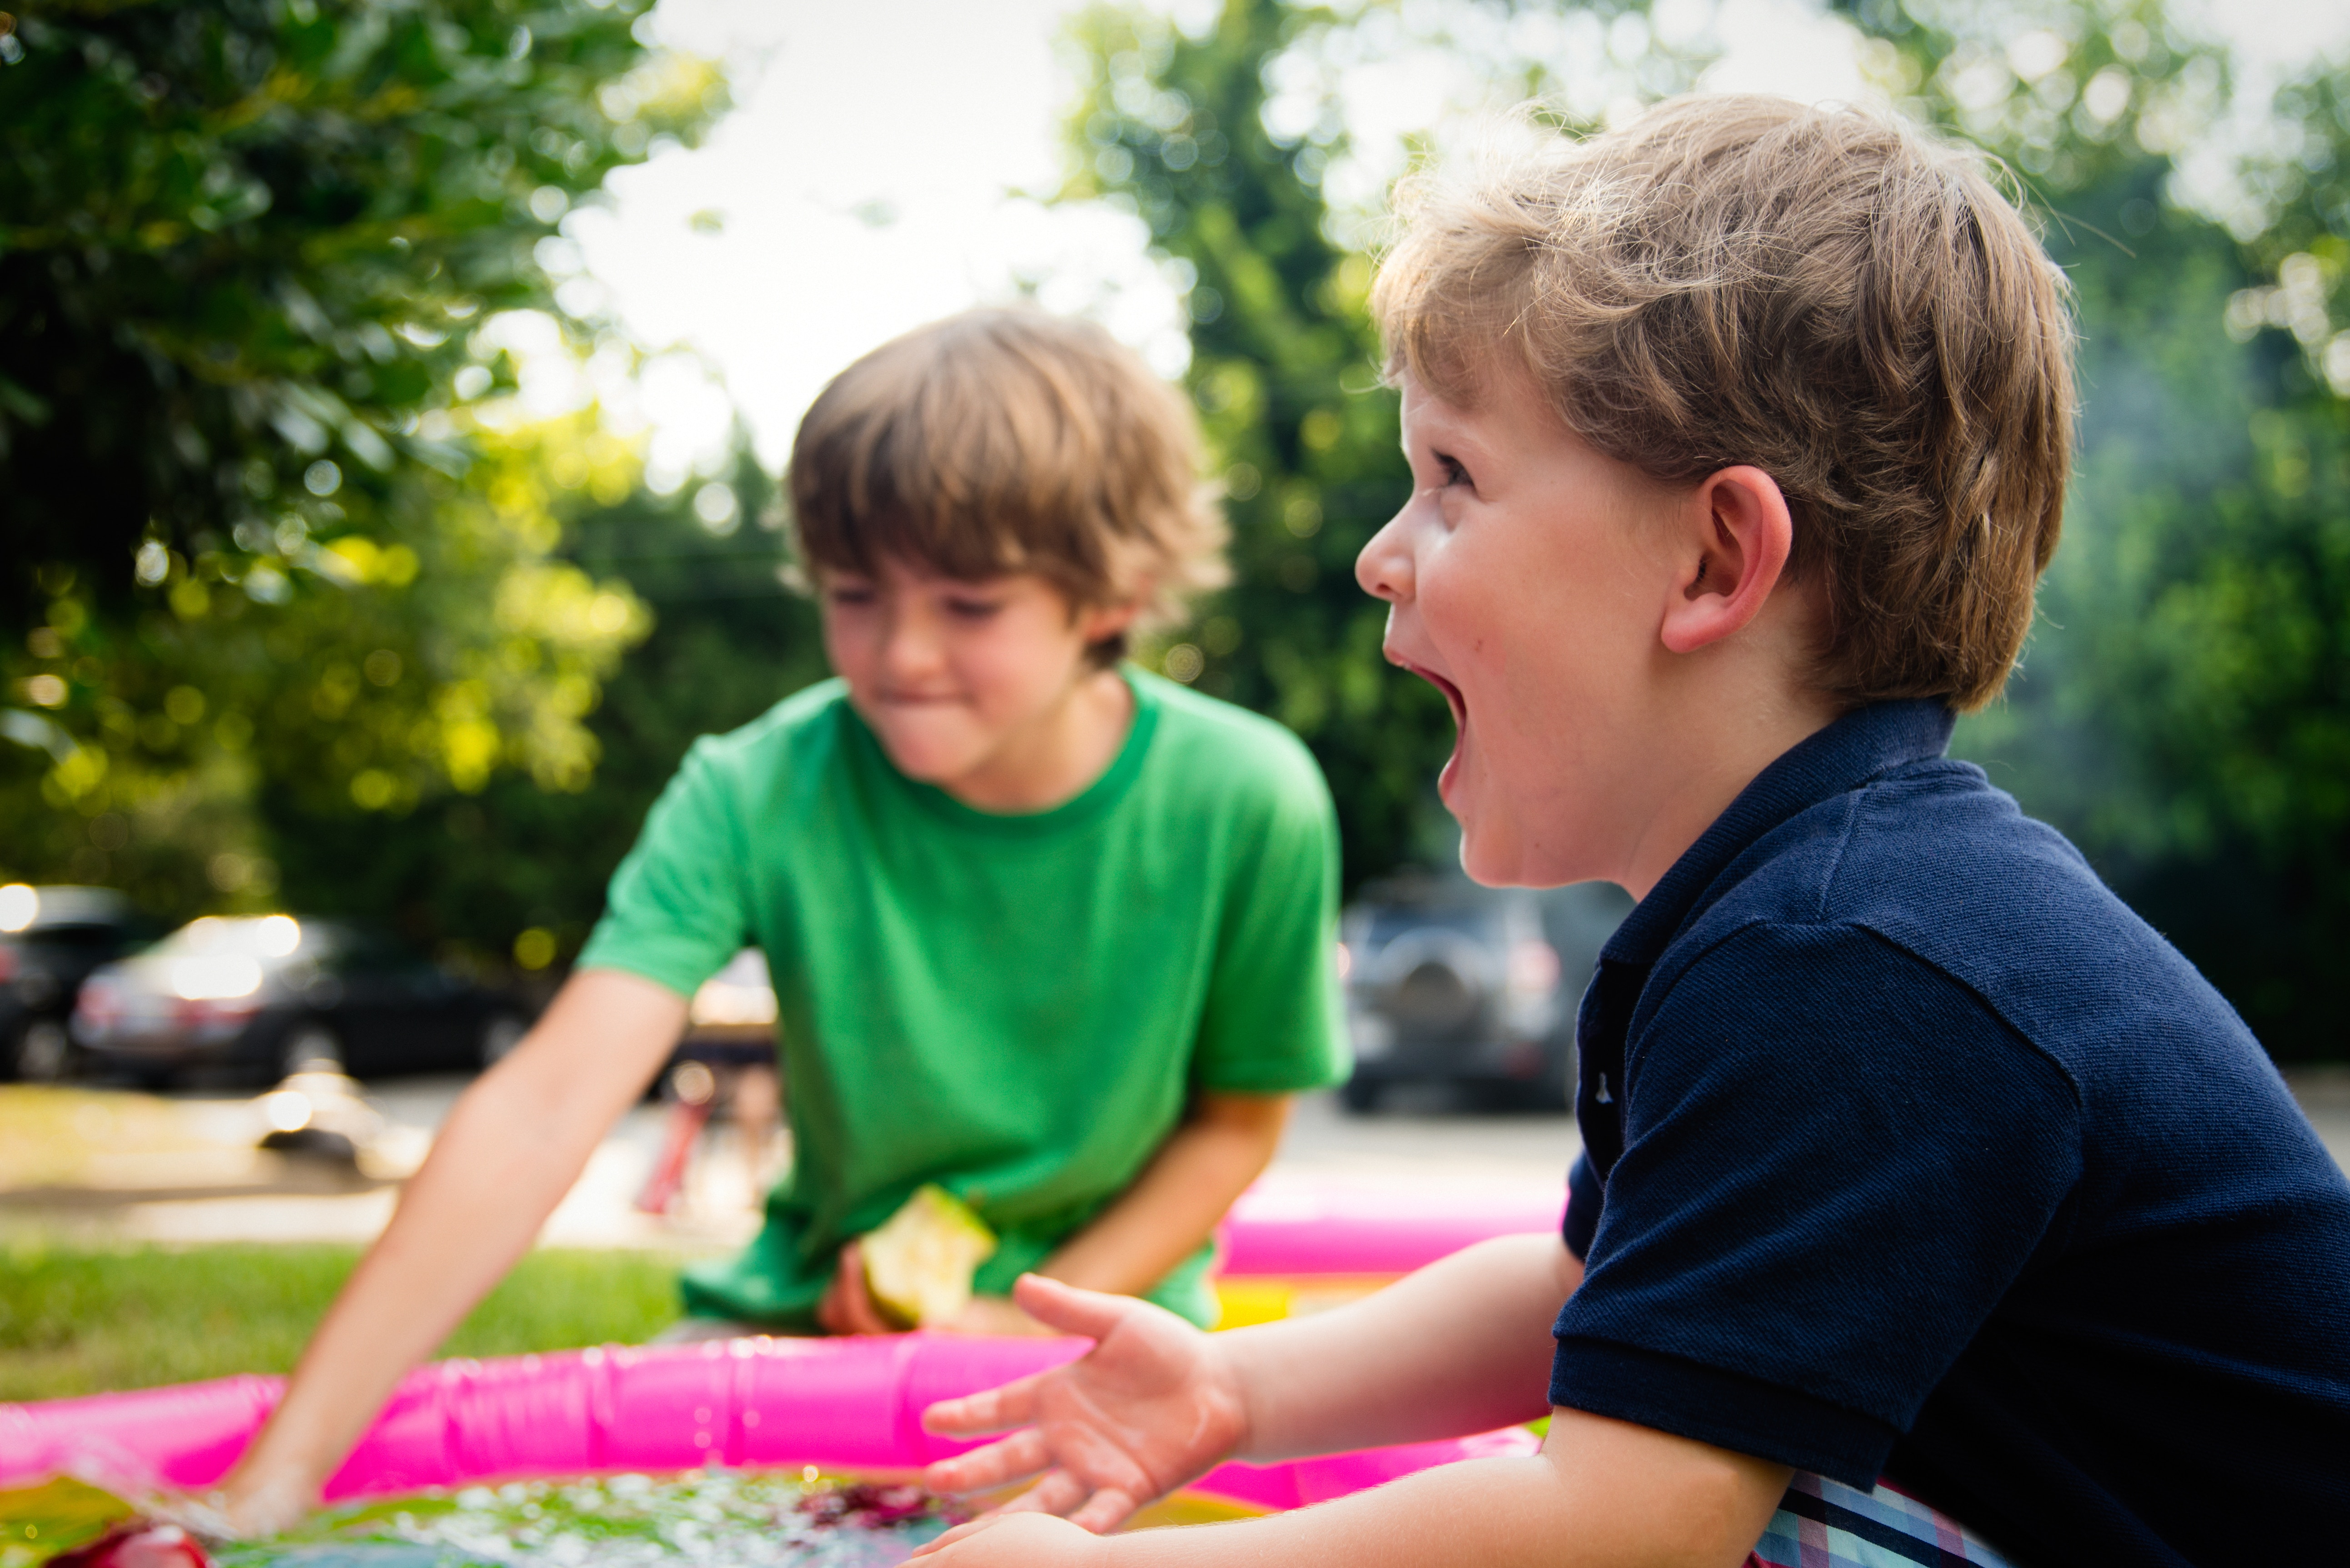 Top tips on choosing a family friendly suburb